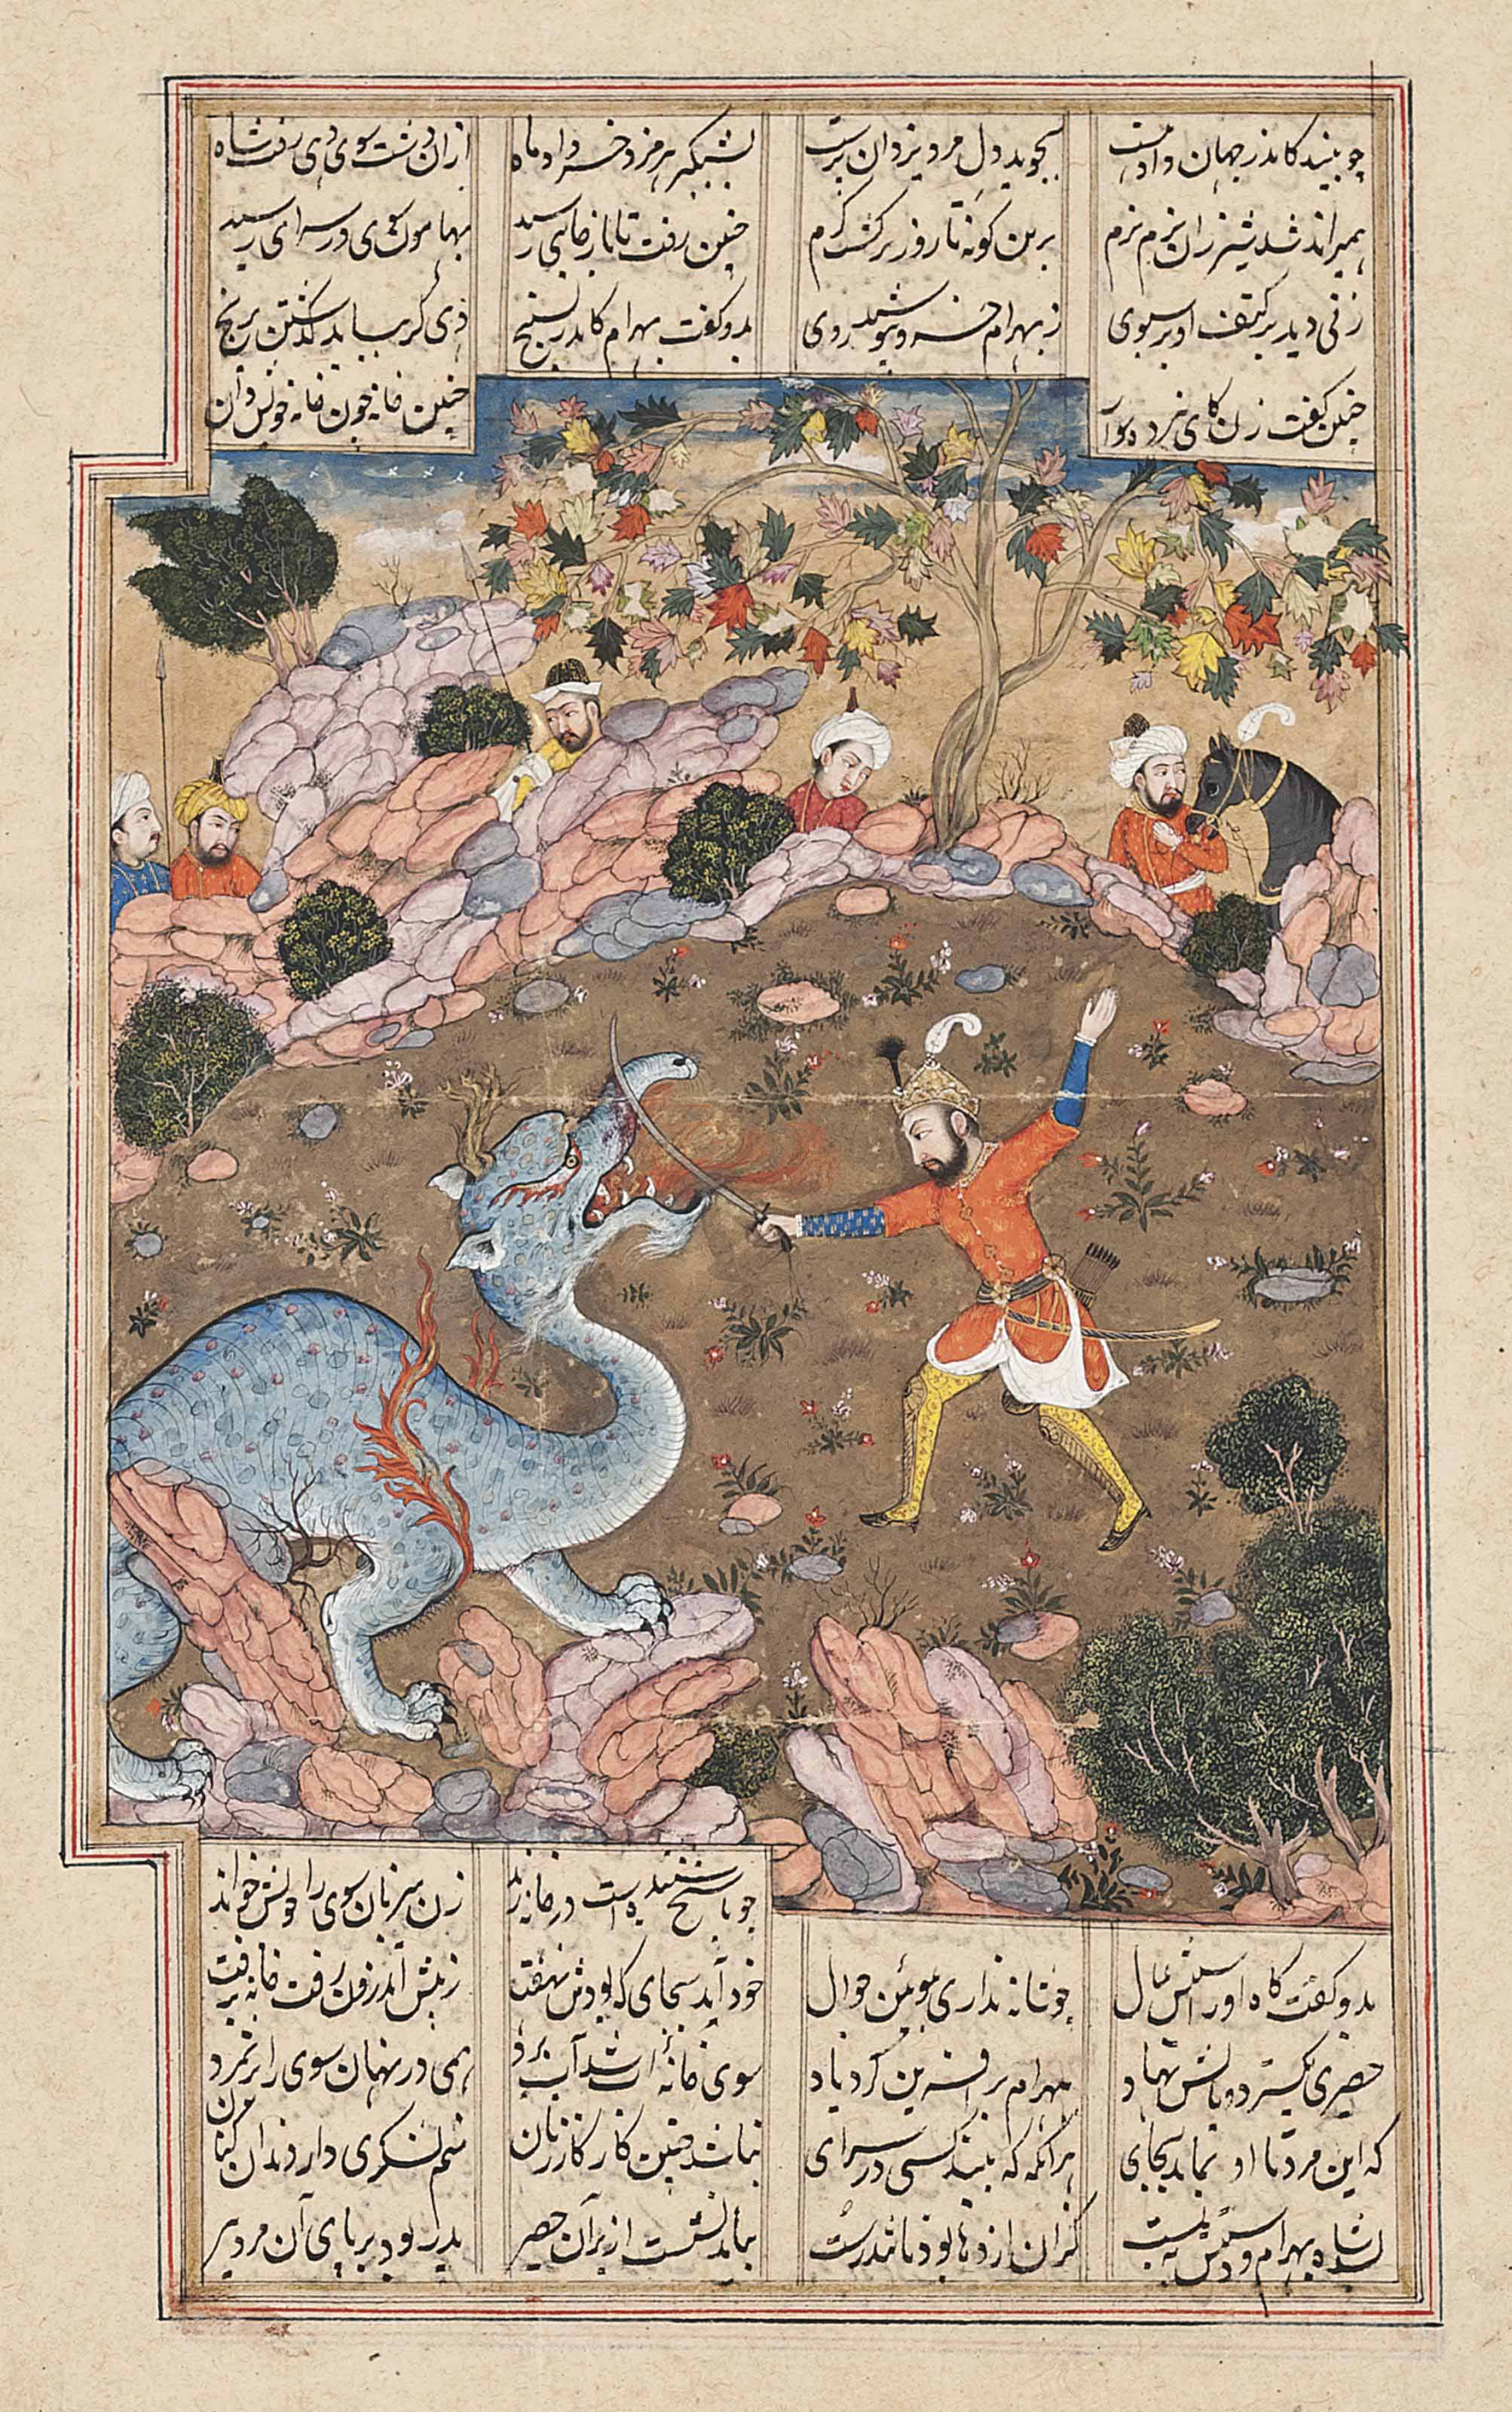 AN ILLUSTRATED FOLIO FROM A SHAHNAMA : A HERO SLAYS A DRAGON